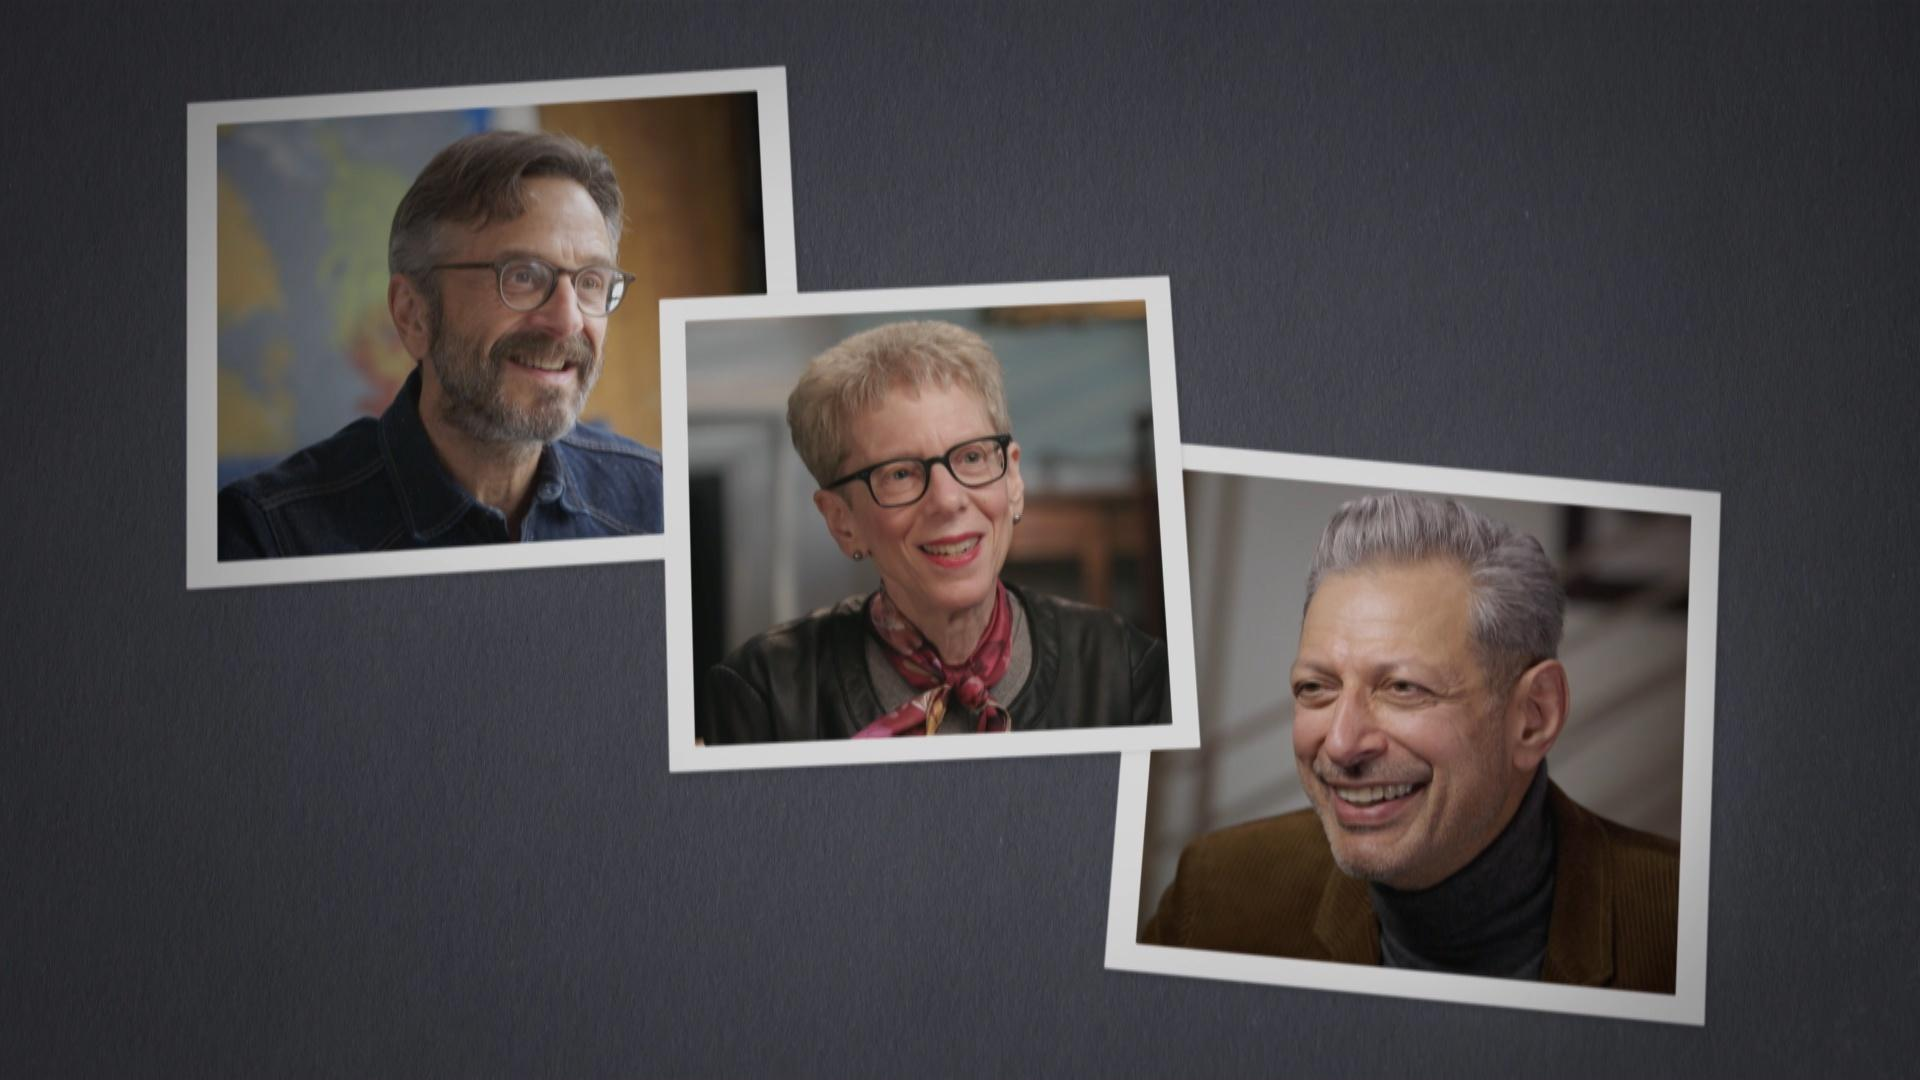 Images of Jeff Goldblum, Terry Gross, and Marc Maron.